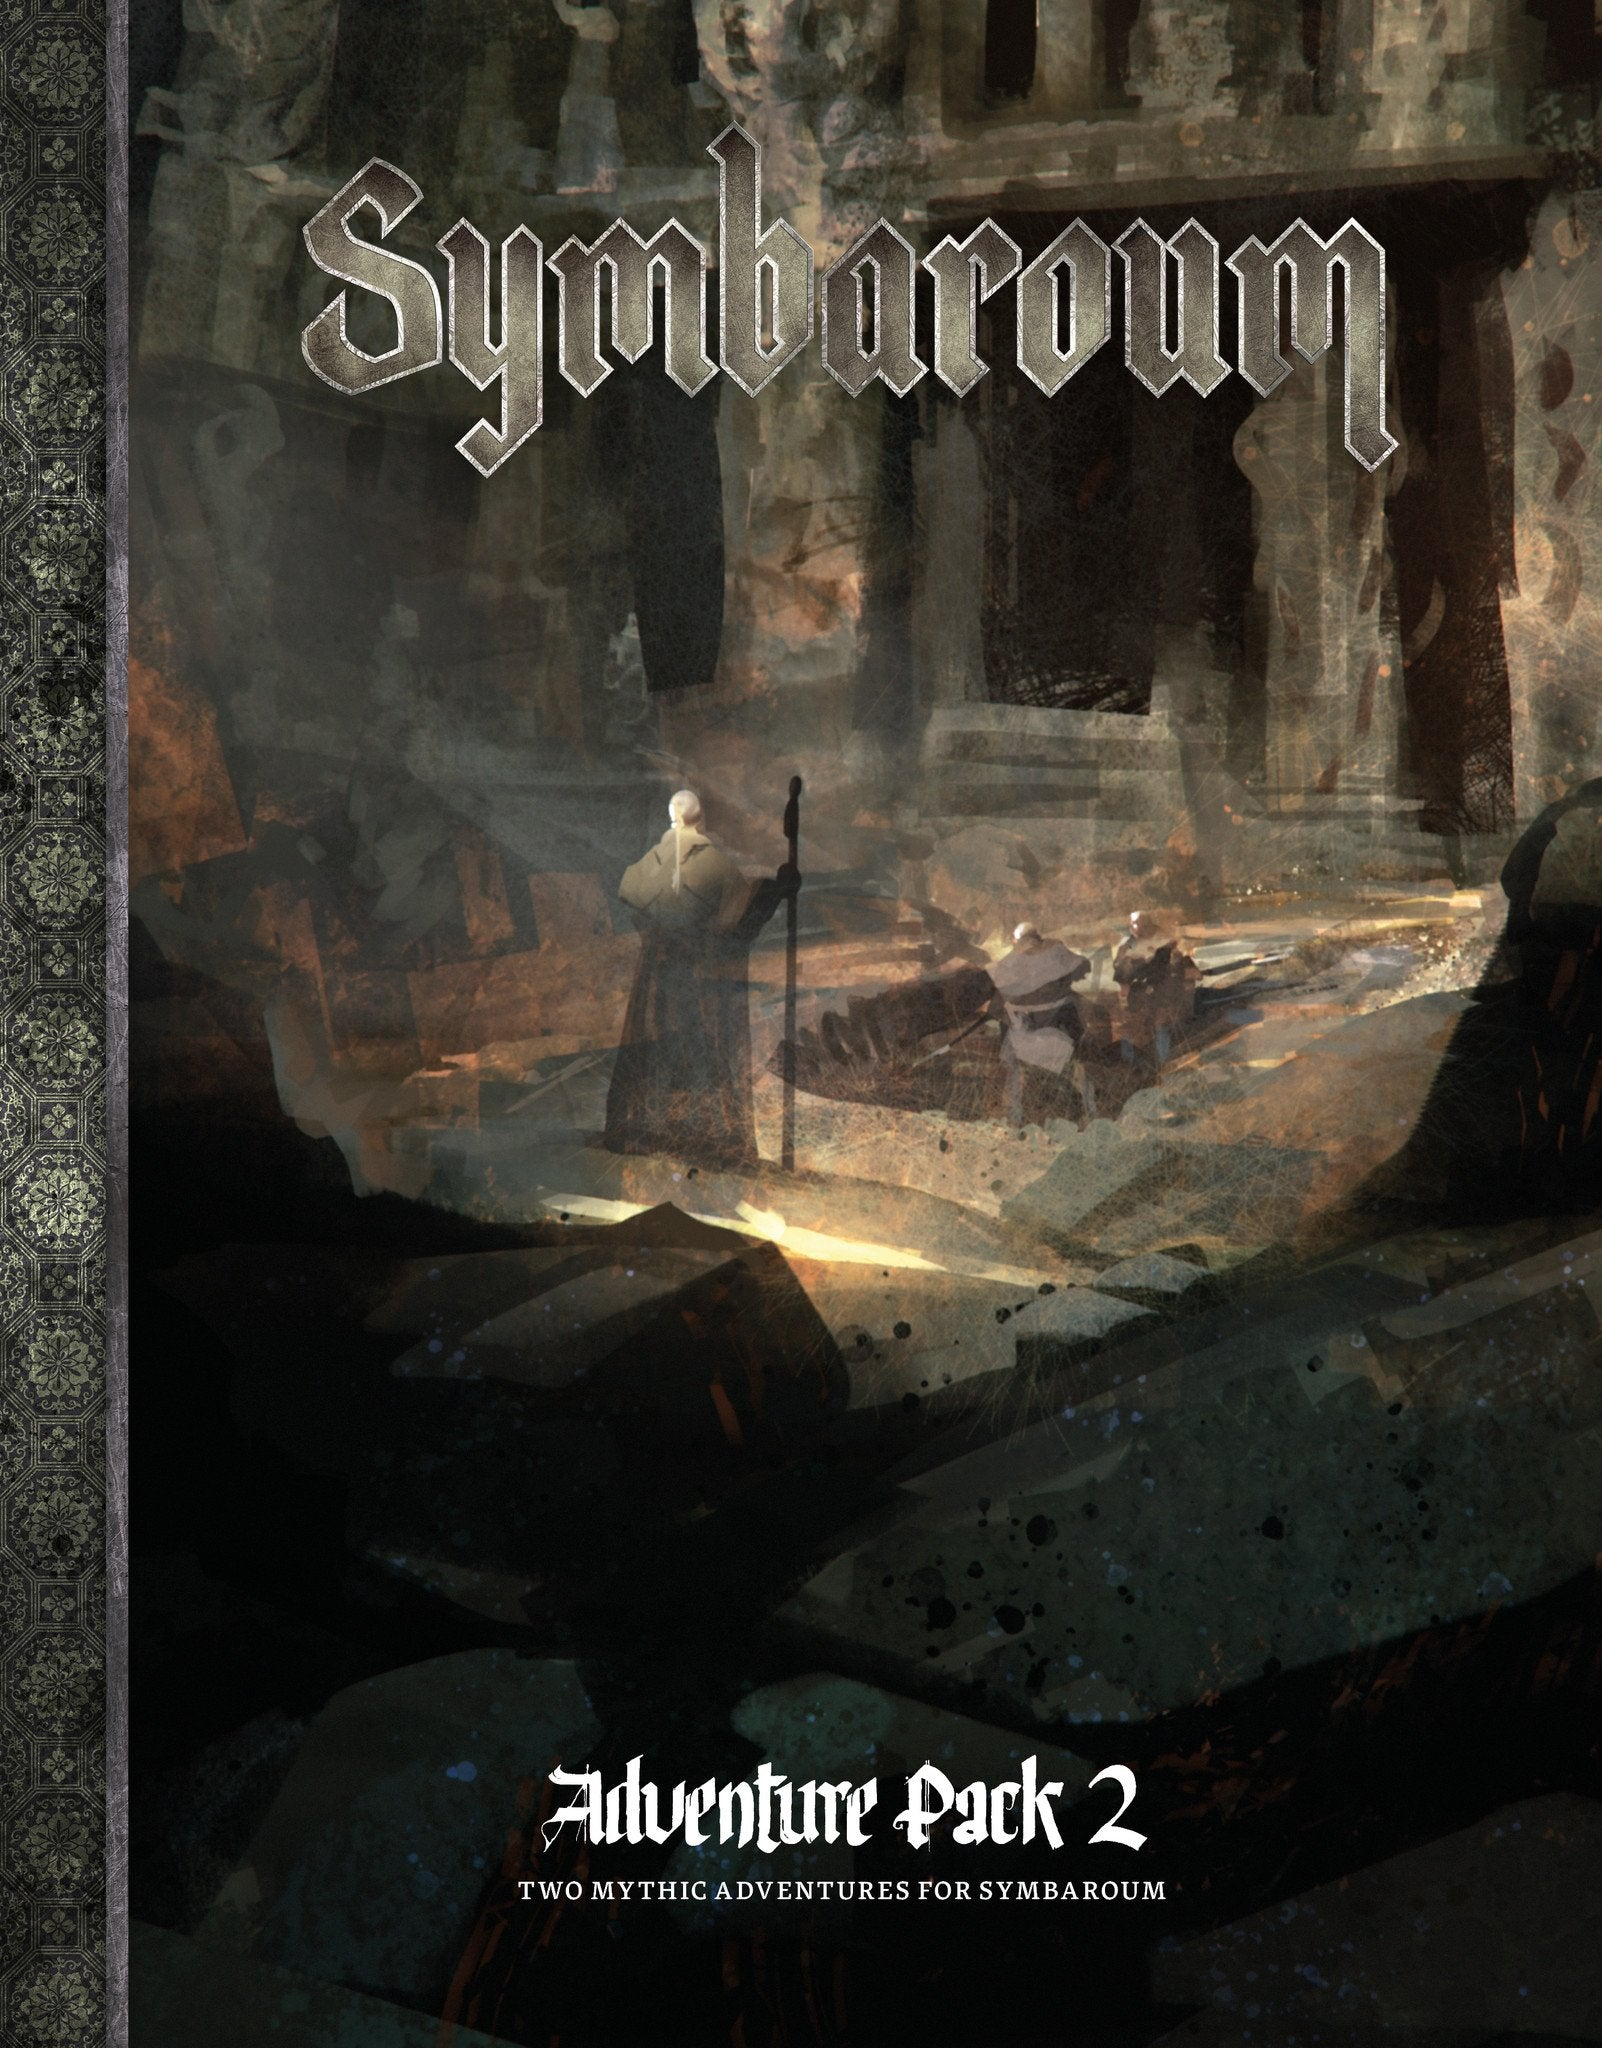 Symbaroum: Adventure Pack 2